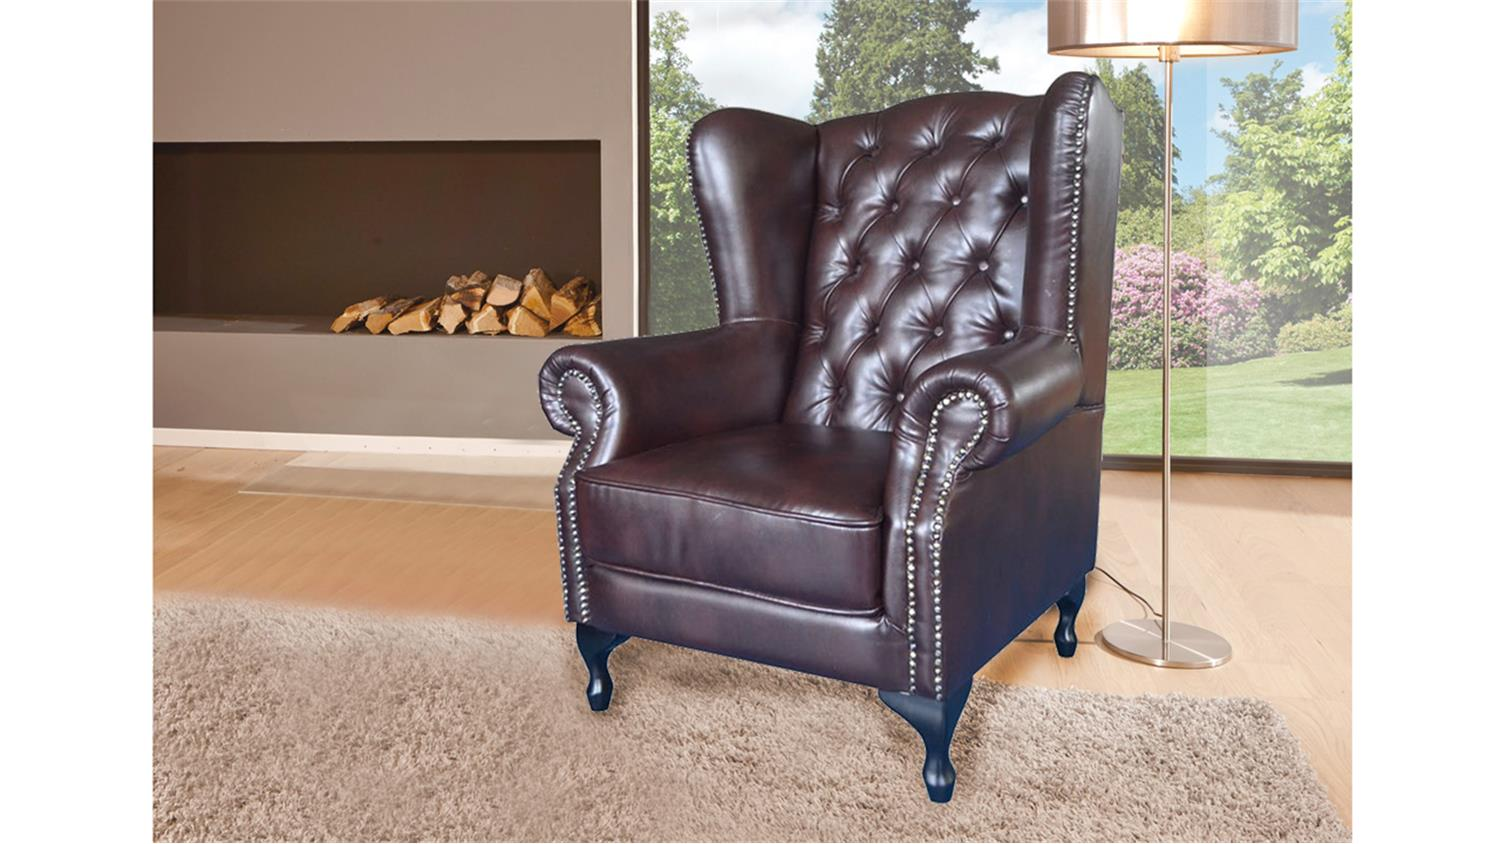 ohrensessel chesterfield dunkelbraun gl nzend. Black Bedroom Furniture Sets. Home Design Ideas